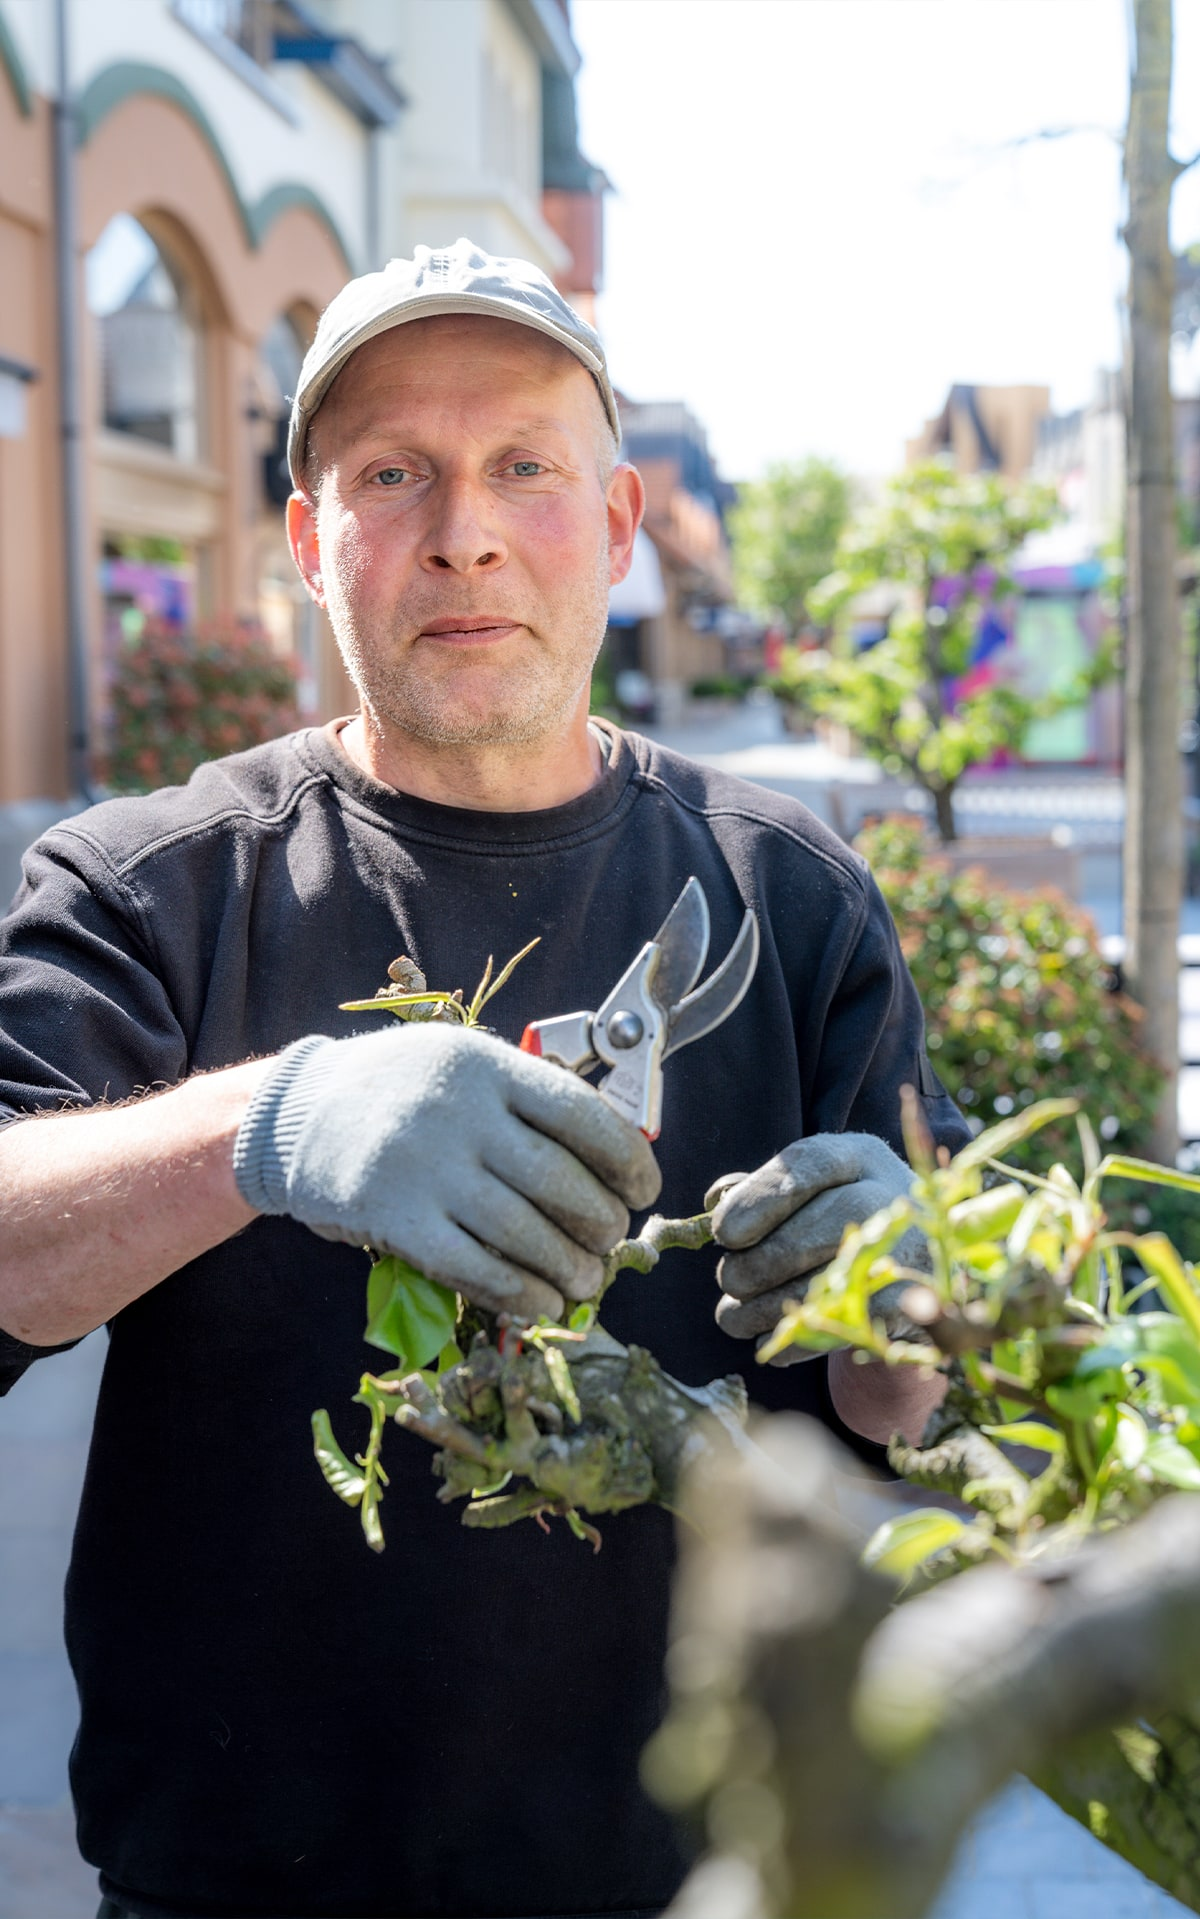 A team of three gardeners works three to four days a week at Maasmechelen Village – from the initial conception of a particular design and choosing the plants to then planting, mowing, weeding, and pruning.